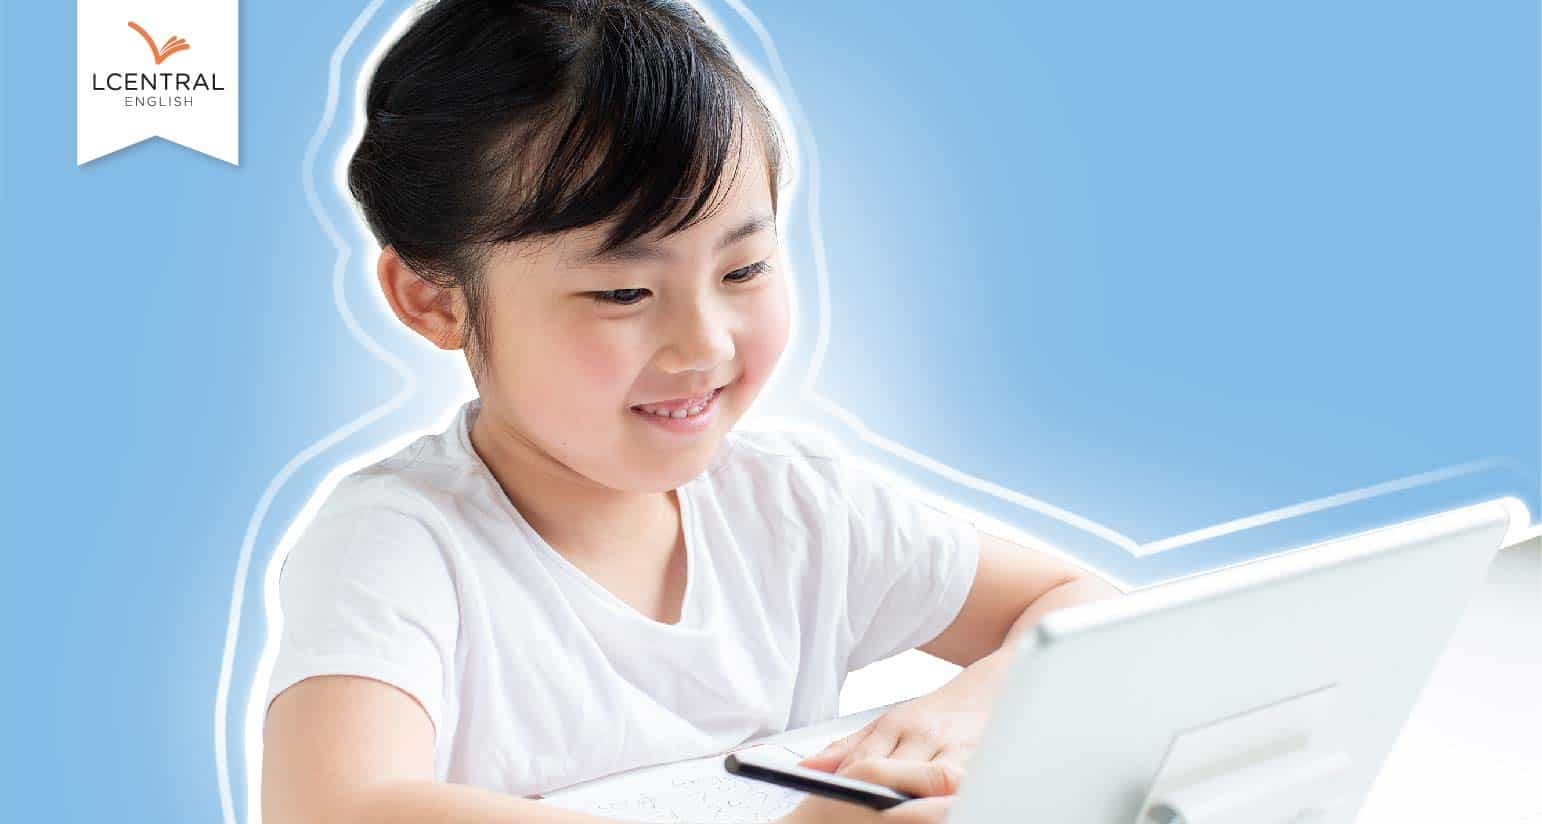 LCentral English Enrichment Tuition Singapore  Getting the most out of screen time HBL and high-quality screen time